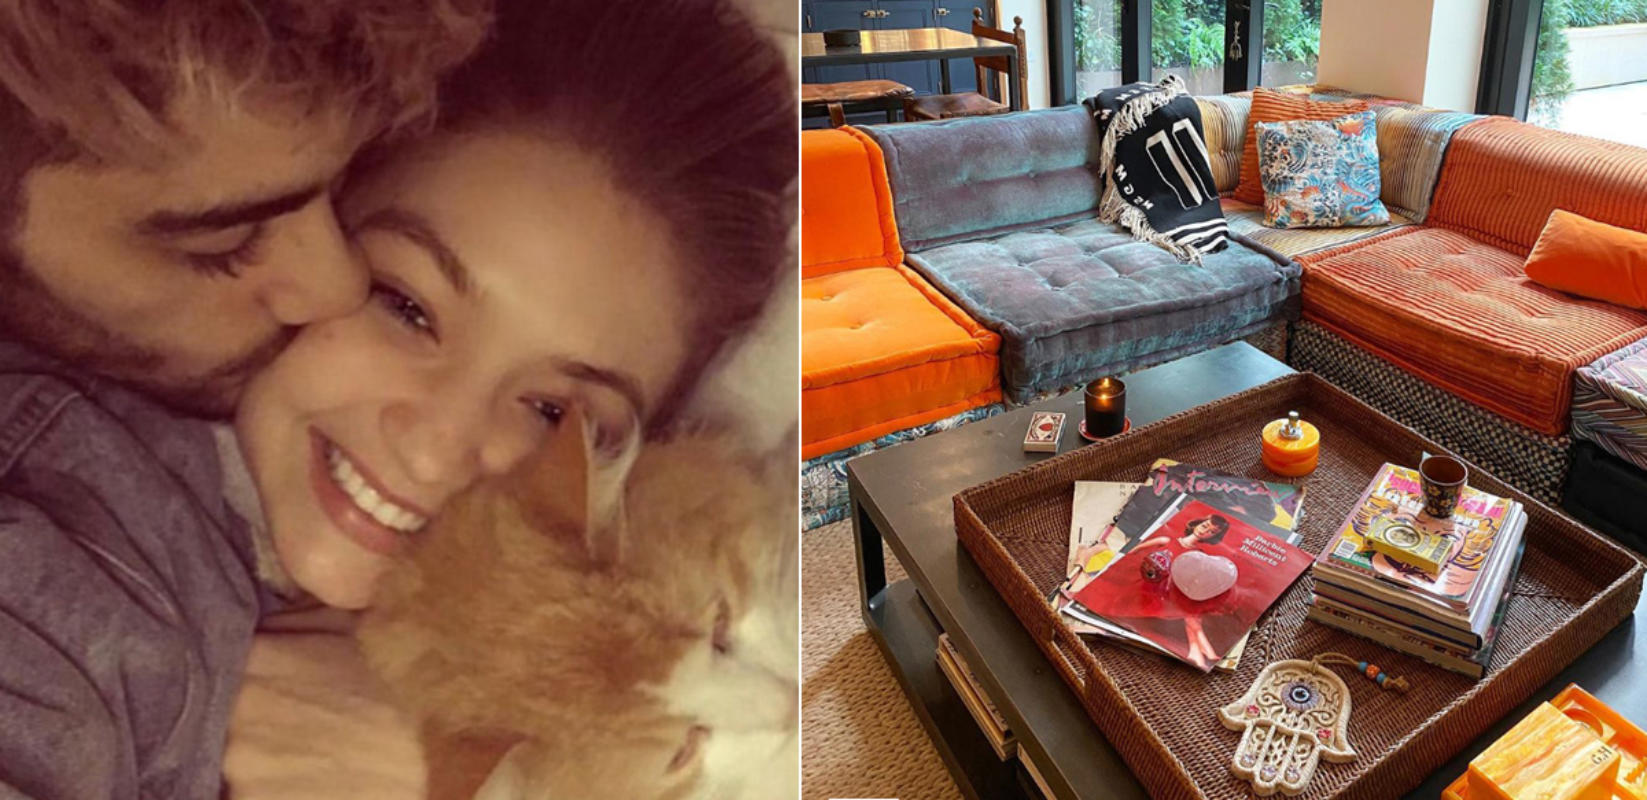 Gigi Hadid shares inside pictures of her NYC apartment ahead of welcoming baby with Zayn Malik